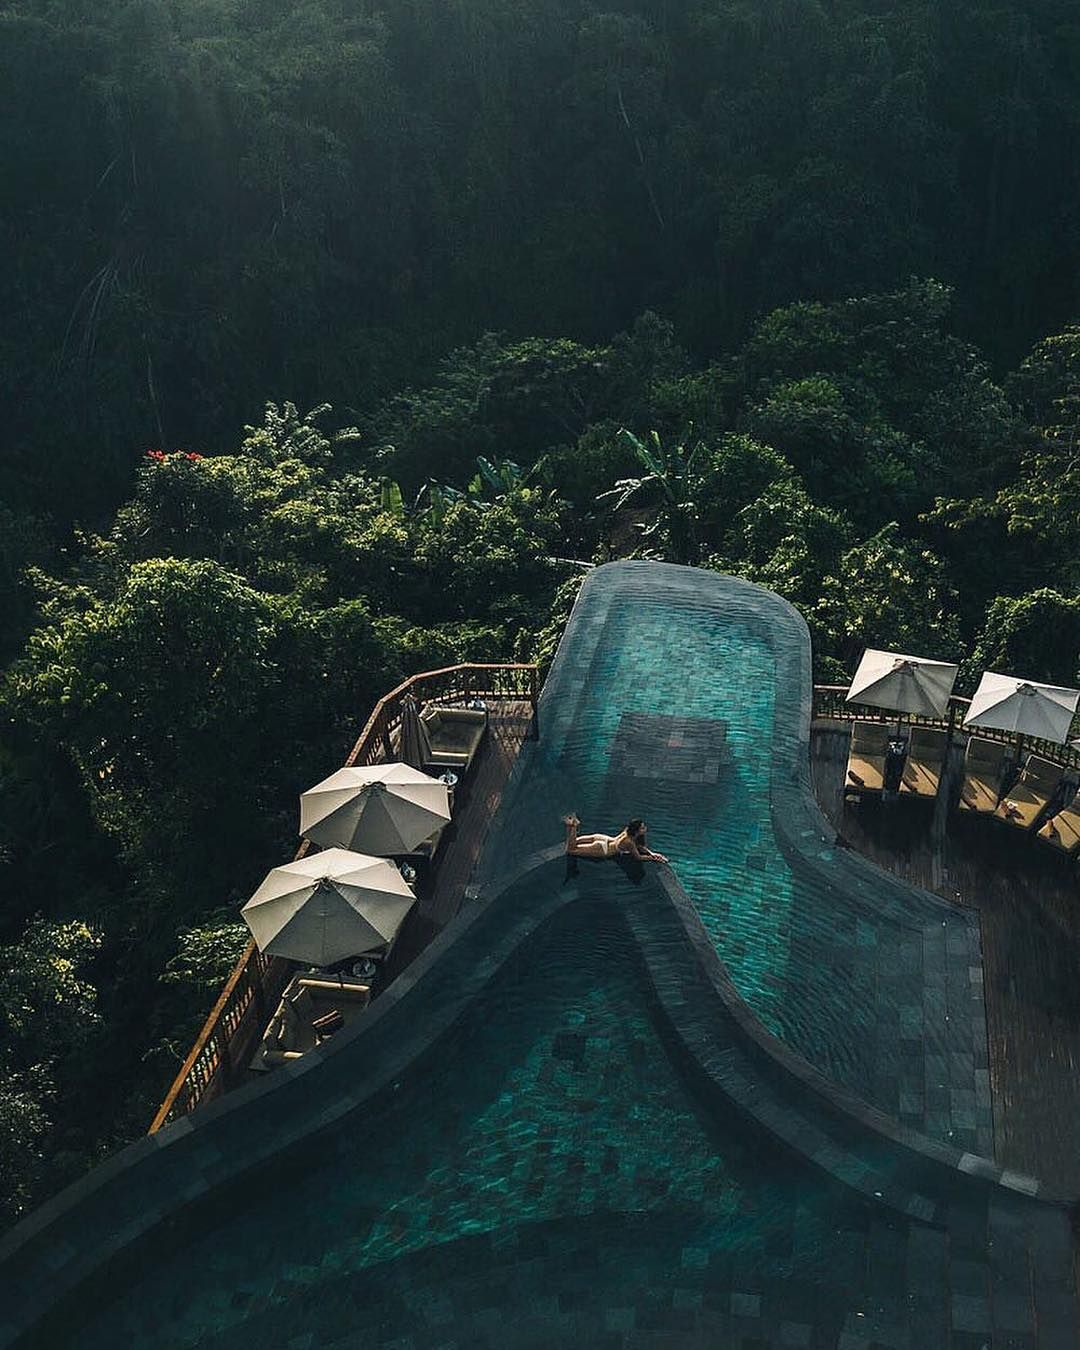 The Hanging Gardens in Bali Indonesia. Looks like a